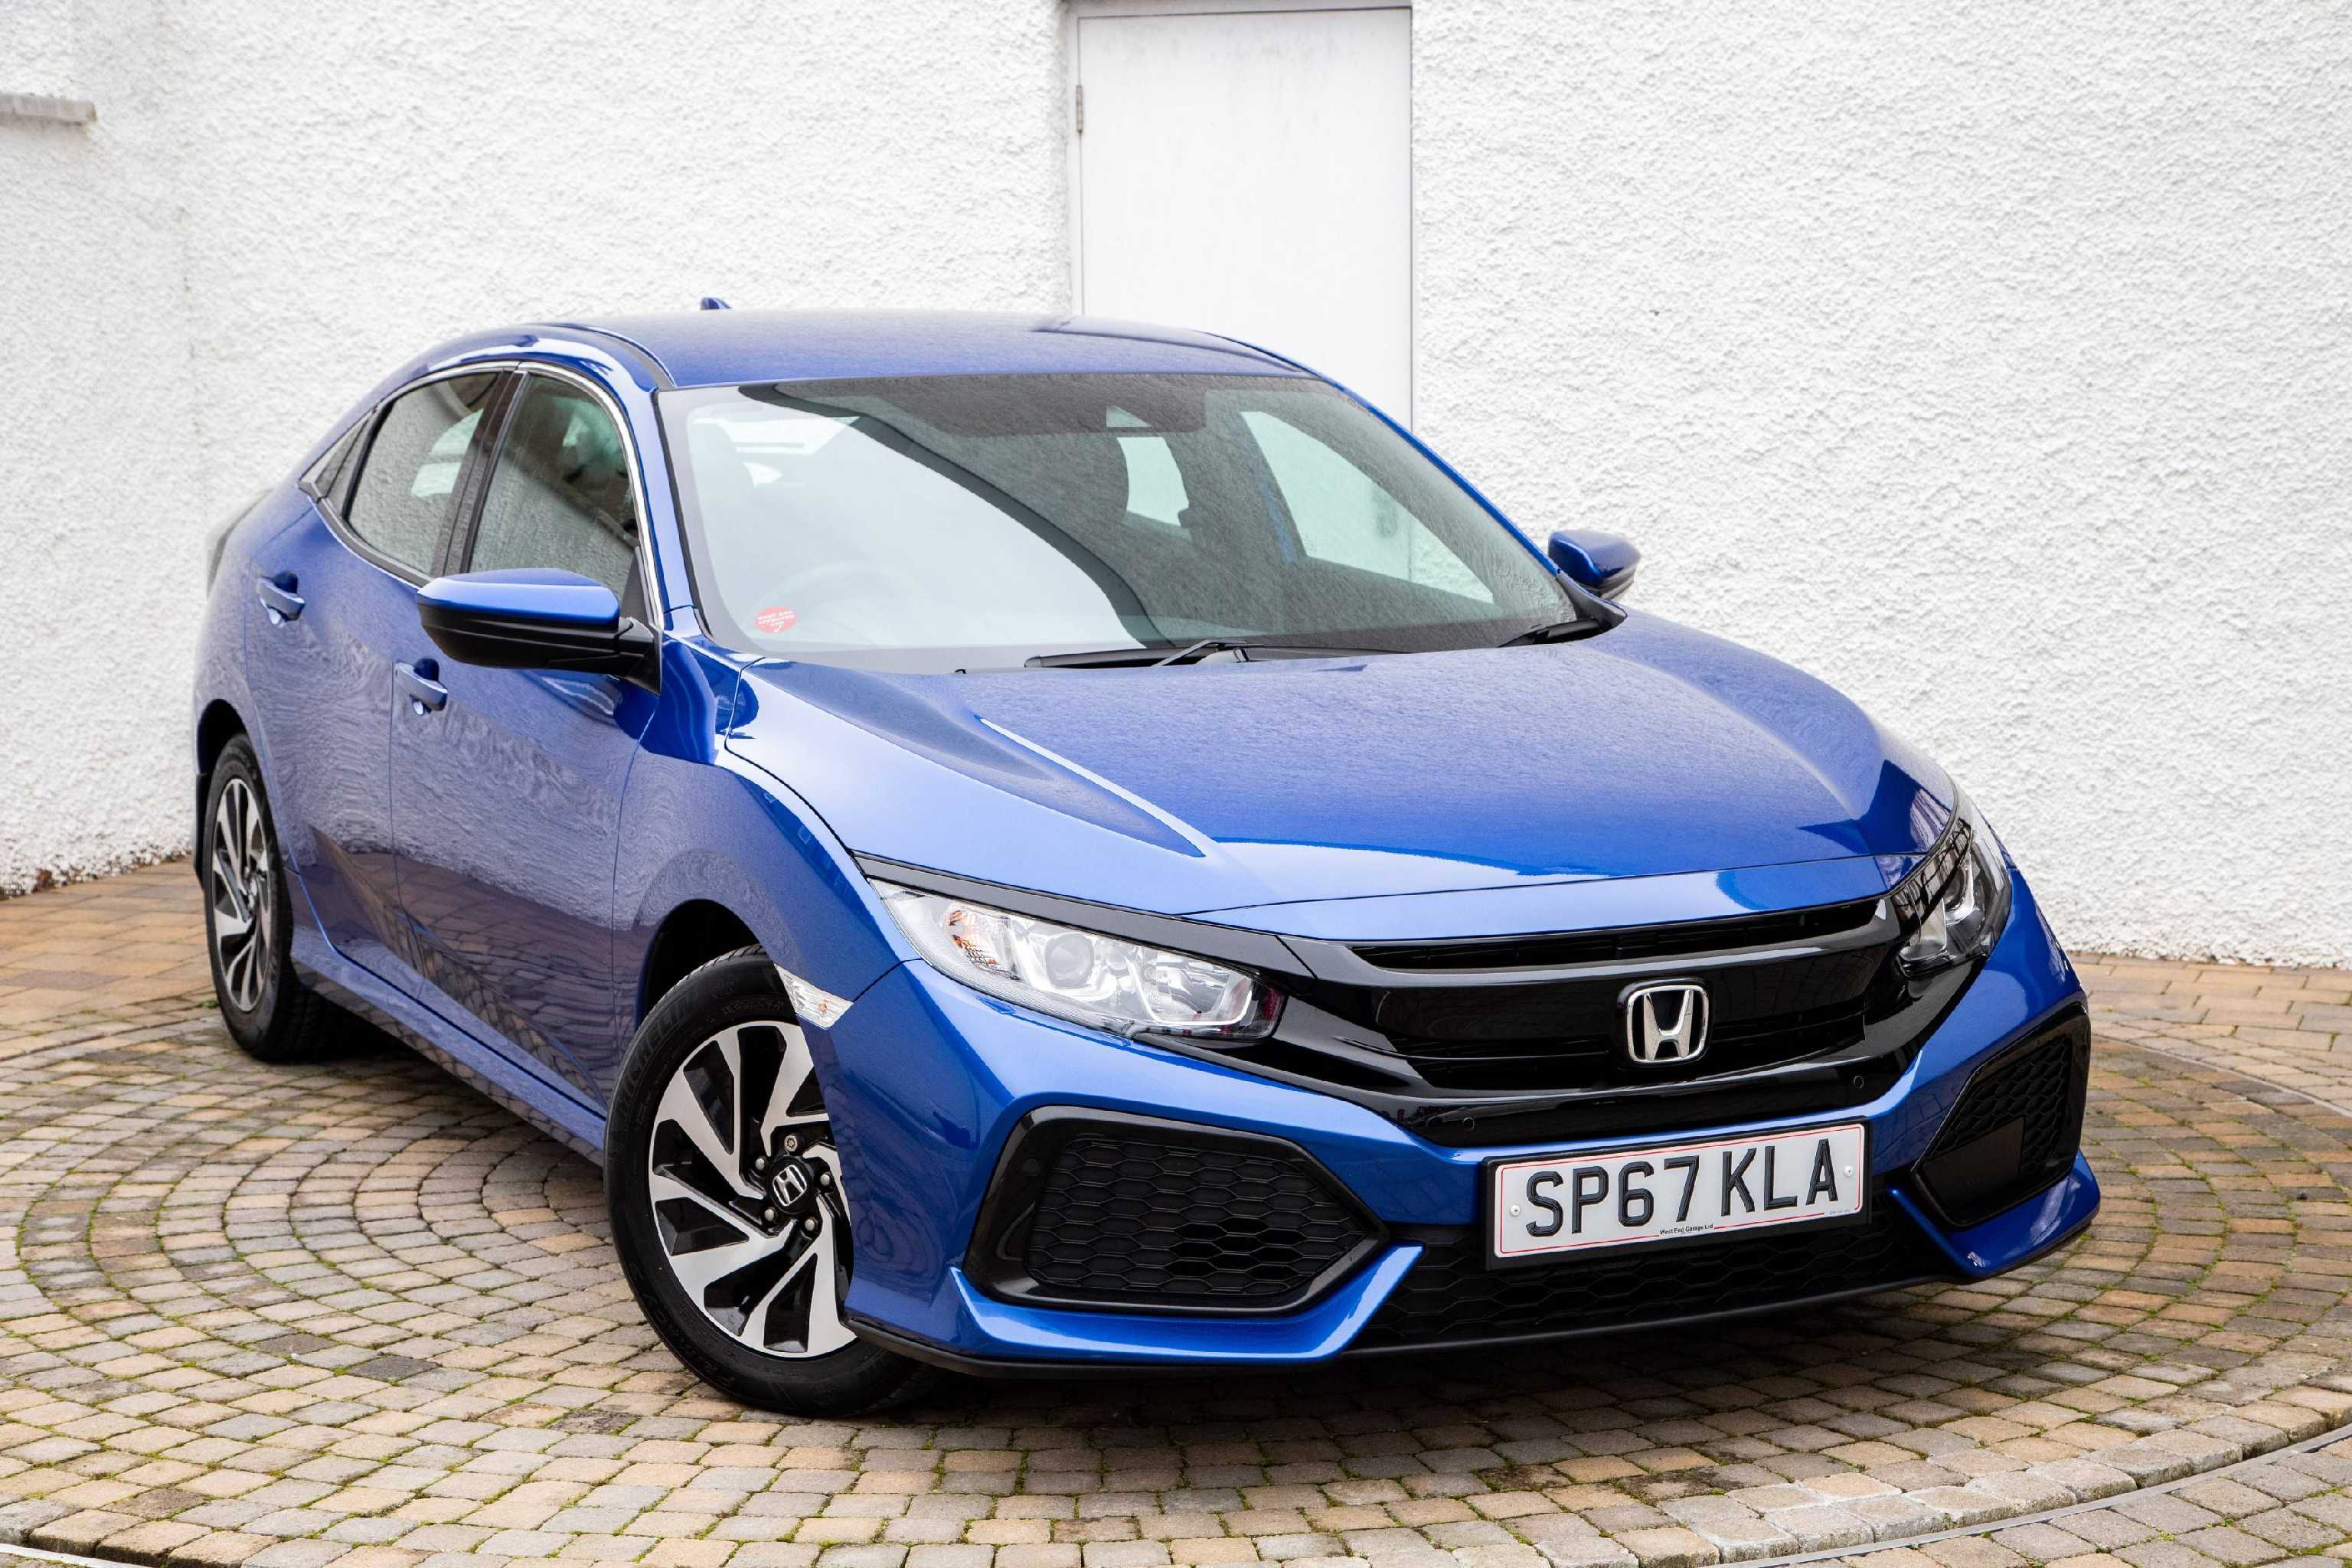 HONDA CIVIC 1.0 VTEC Turbo SE 5dr